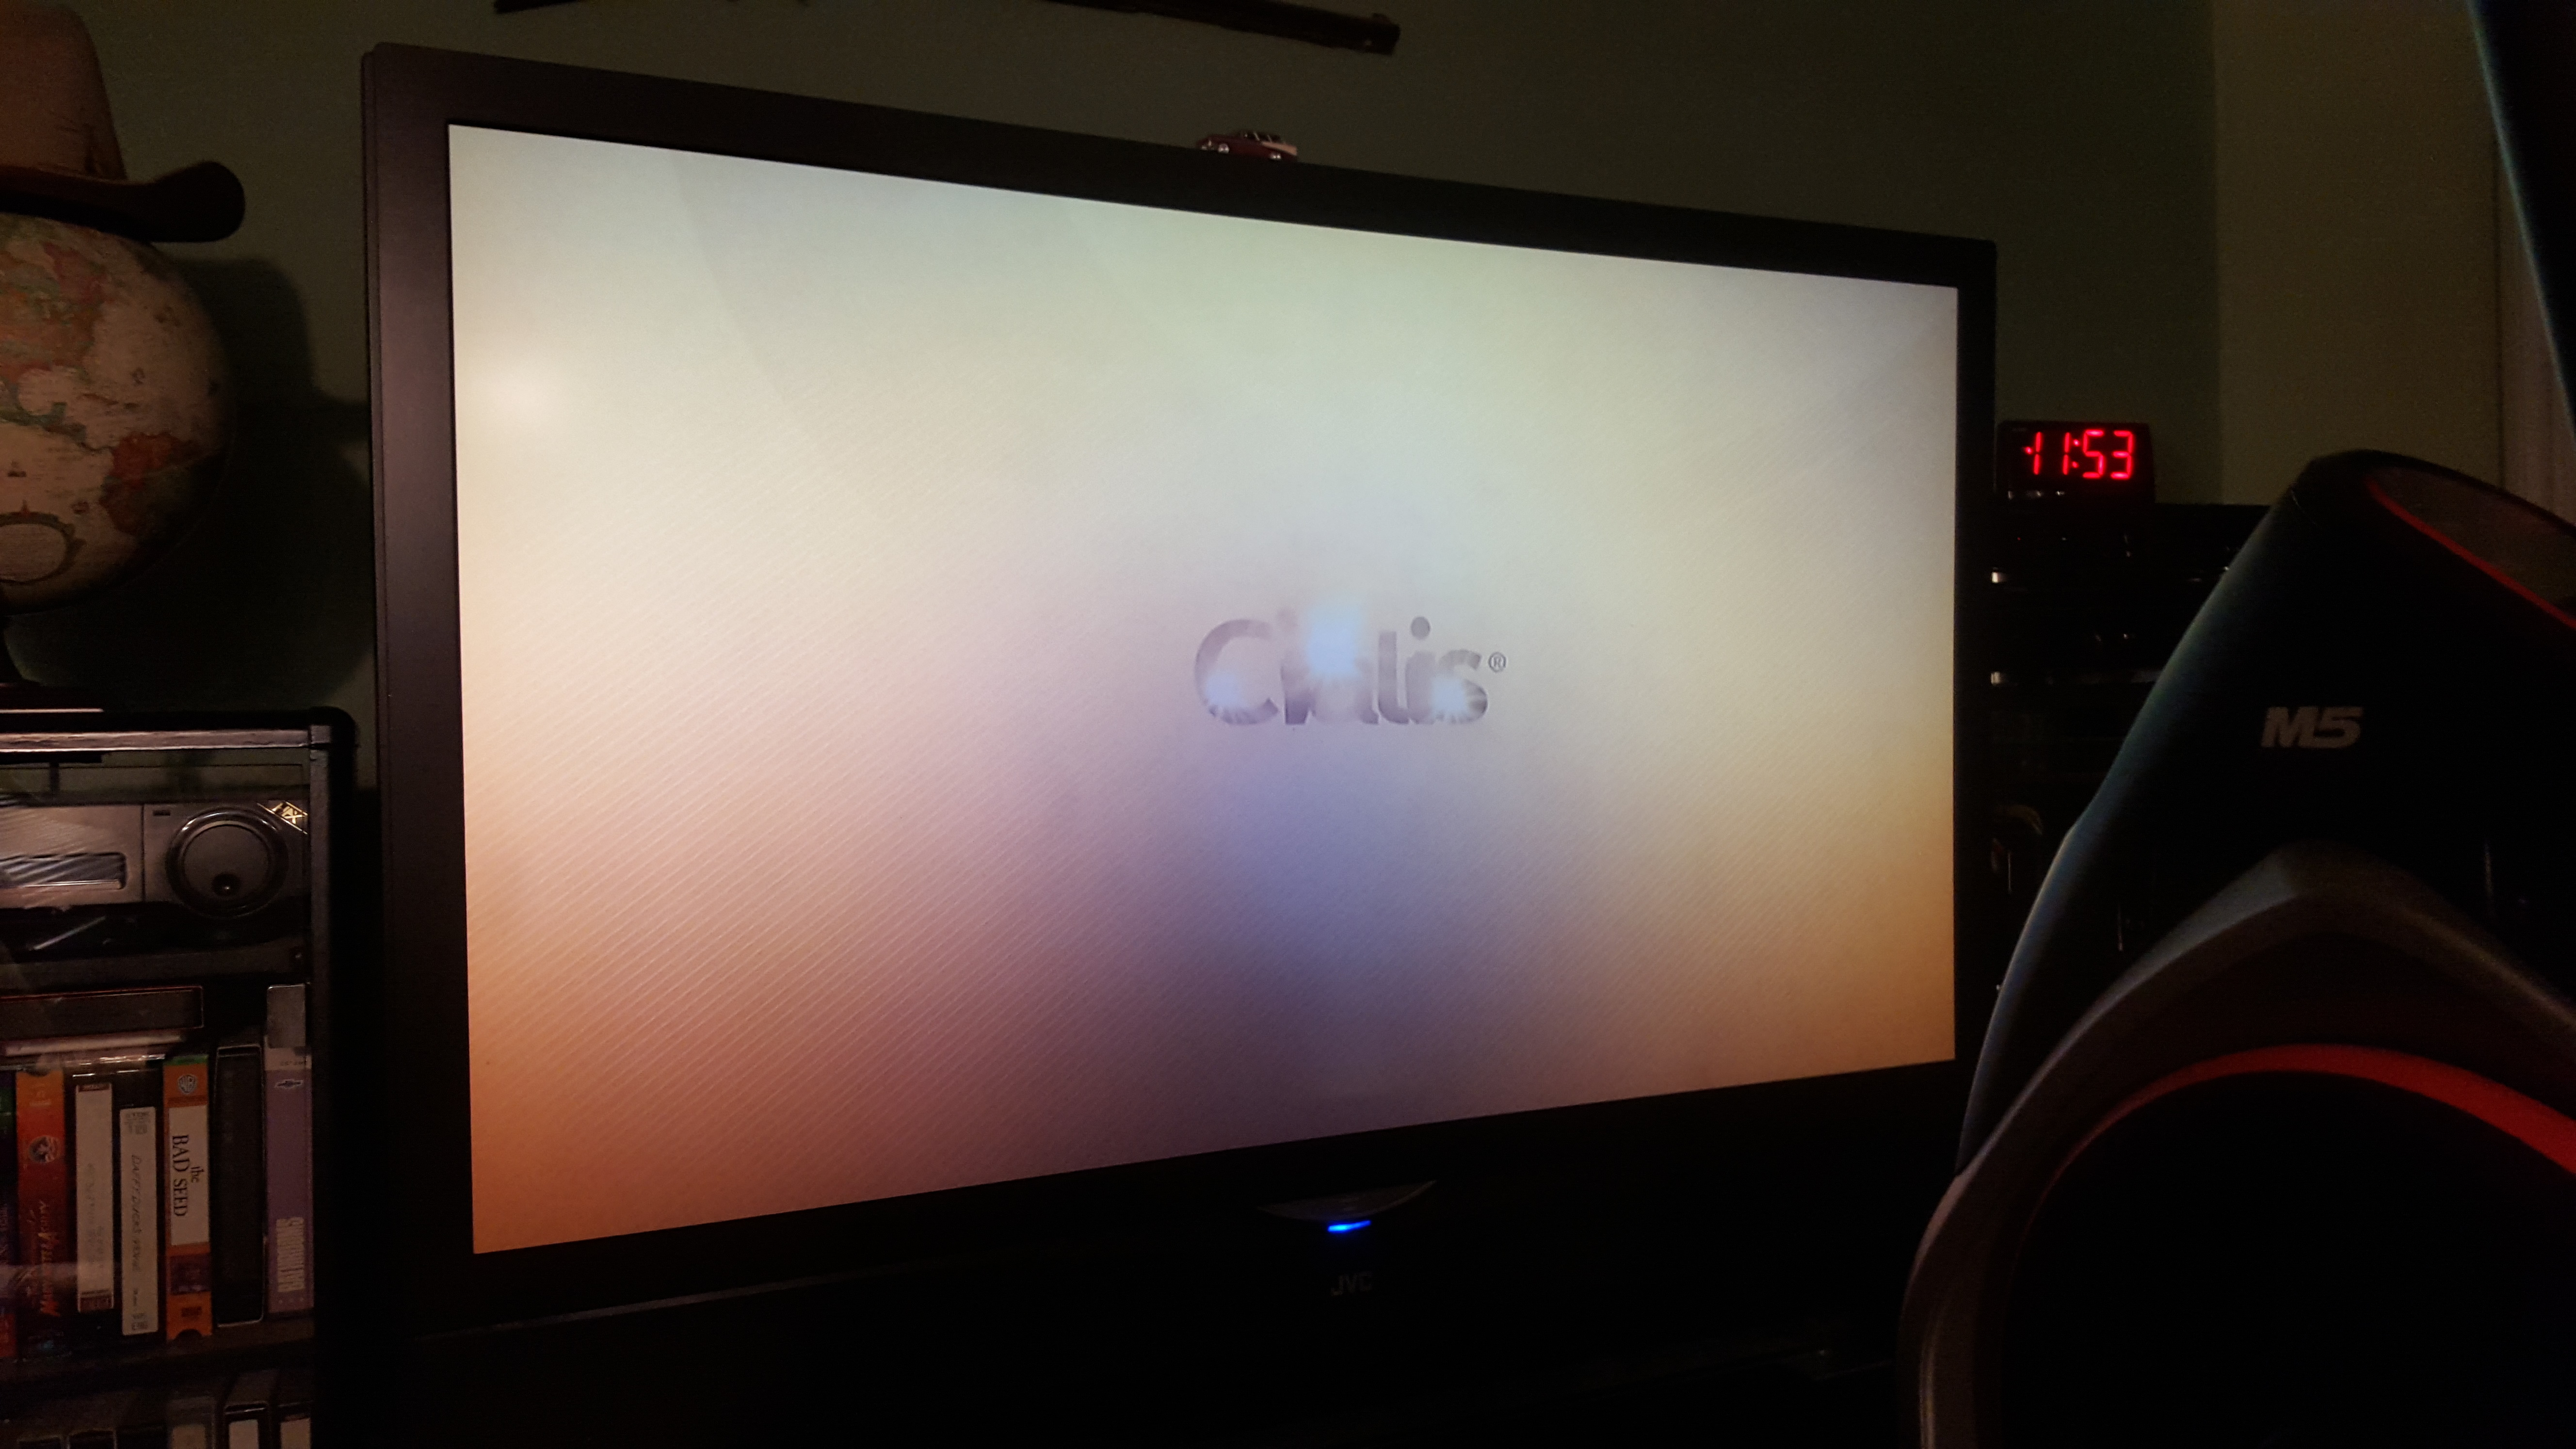 Jvc Projection Tv Problems – HD Wallpapers